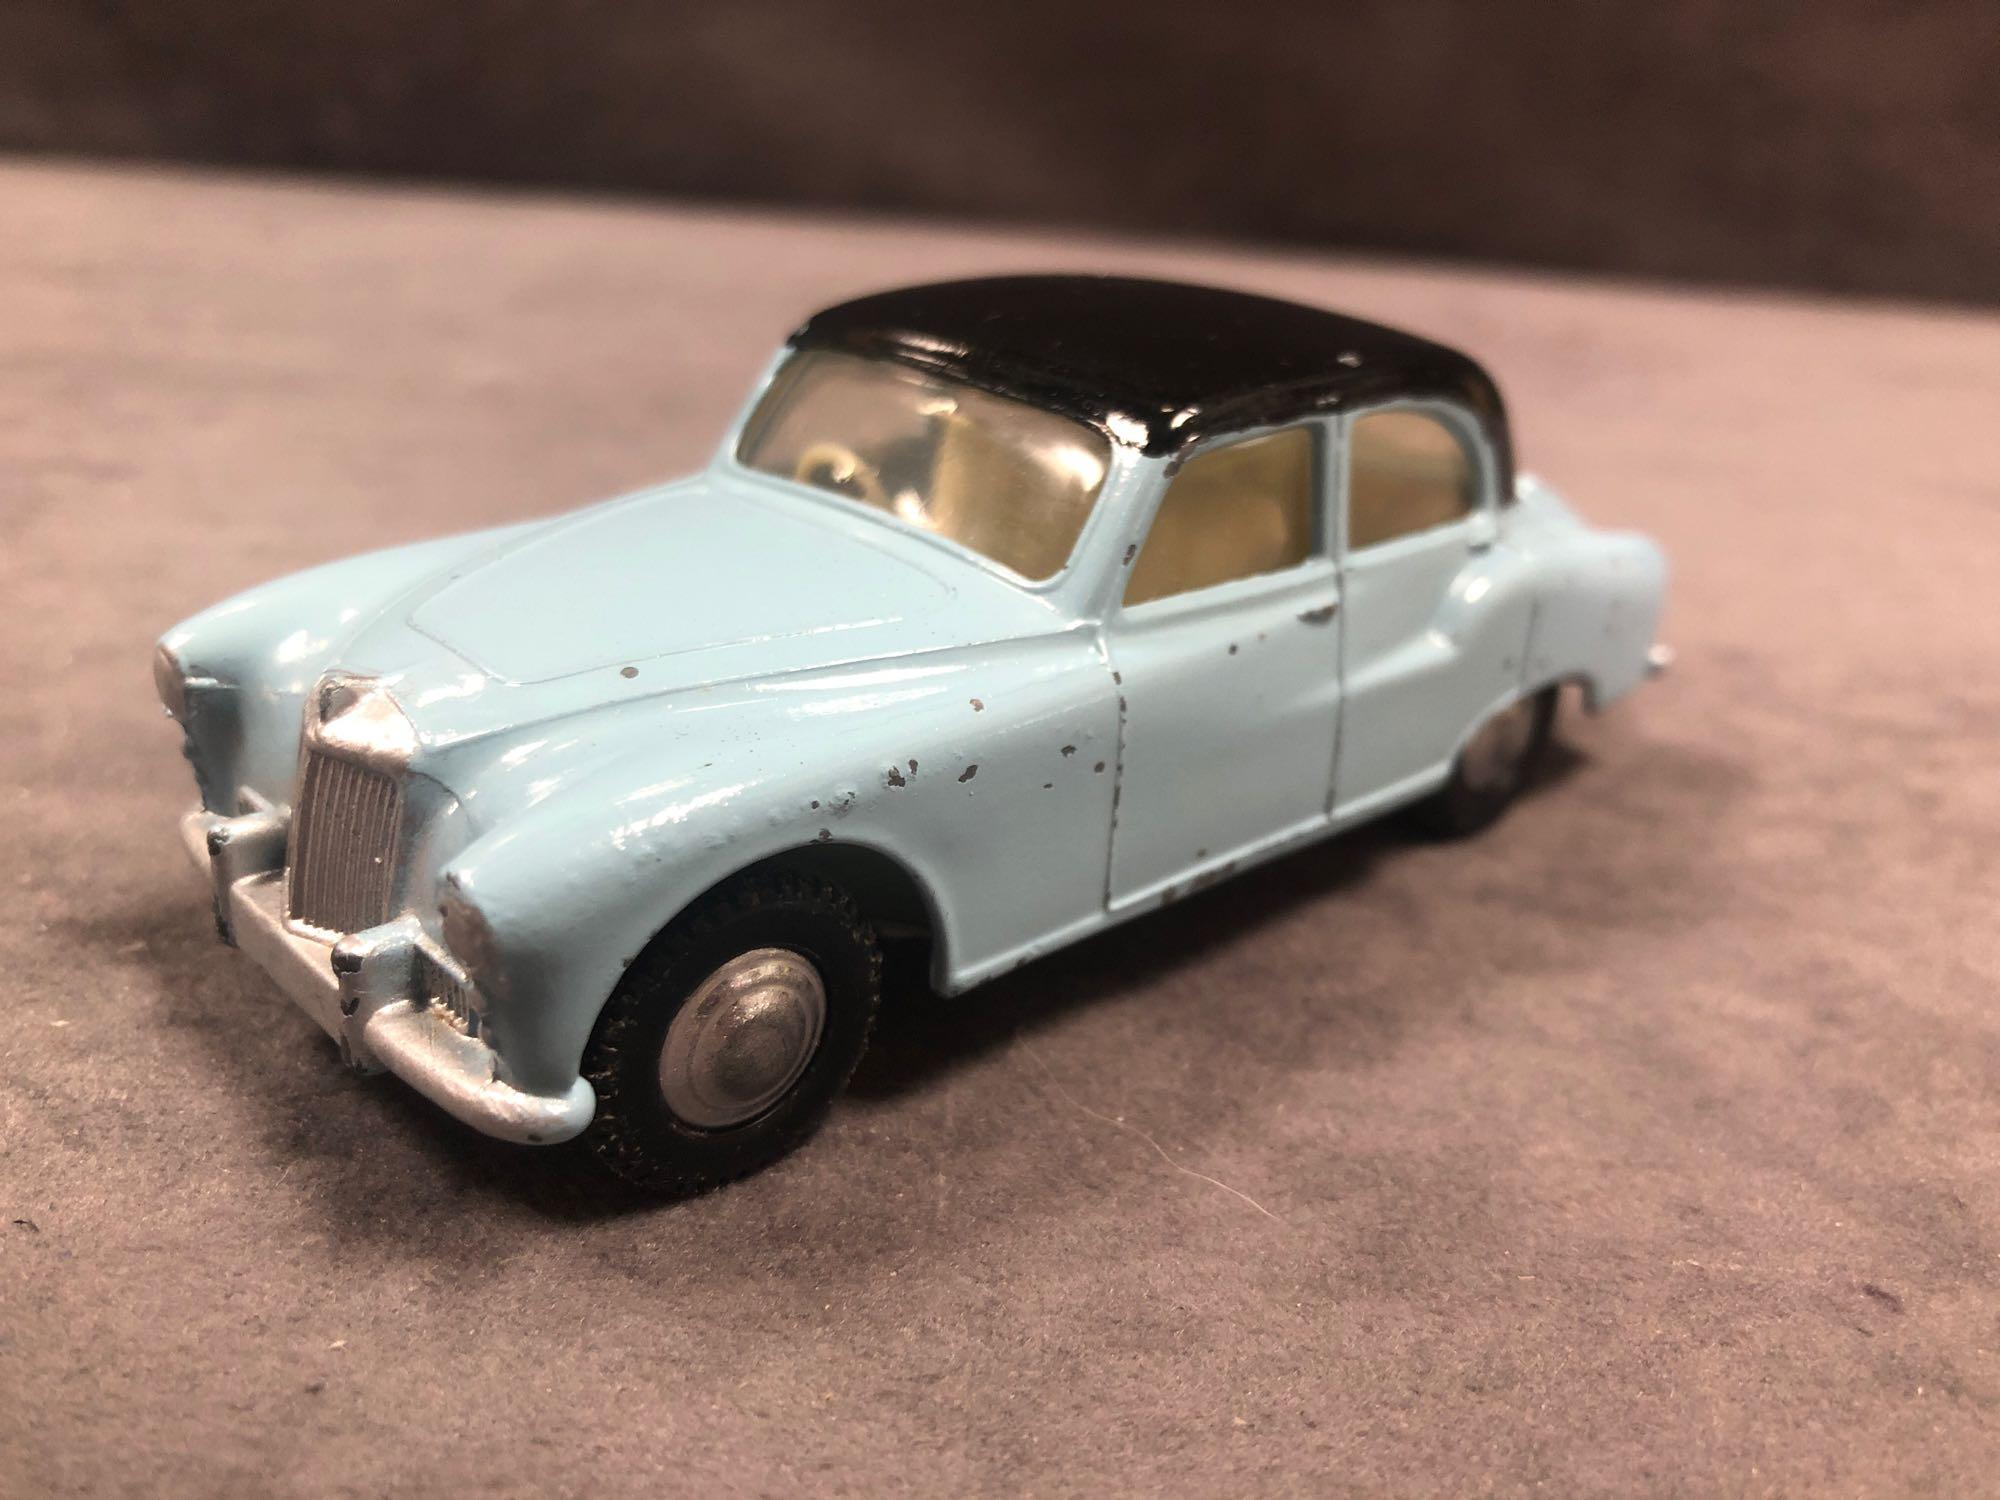 Spot-On 101 Armstrong Siddeley Sapphire Blue With Black Roof - Image 2 of 3